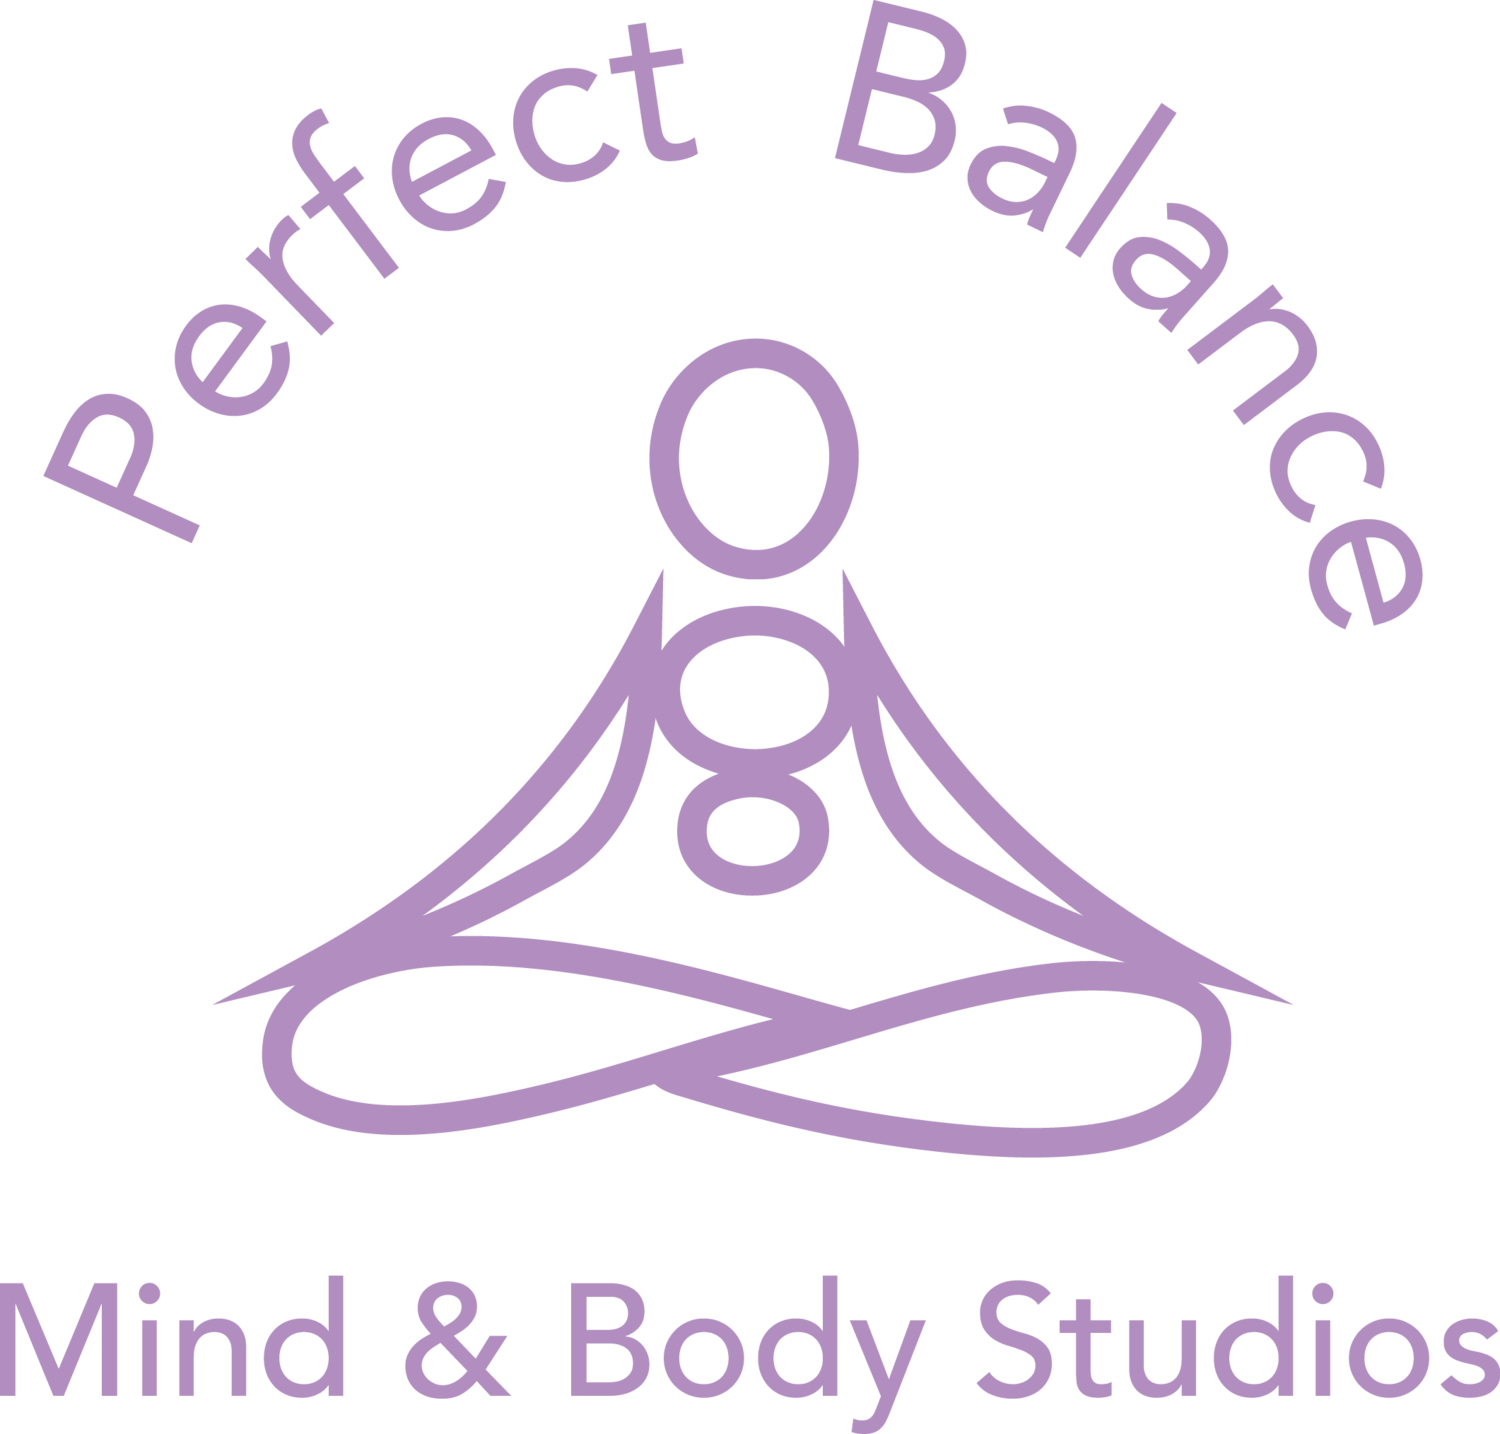 Body clipart body balance. Perfect mind and studios